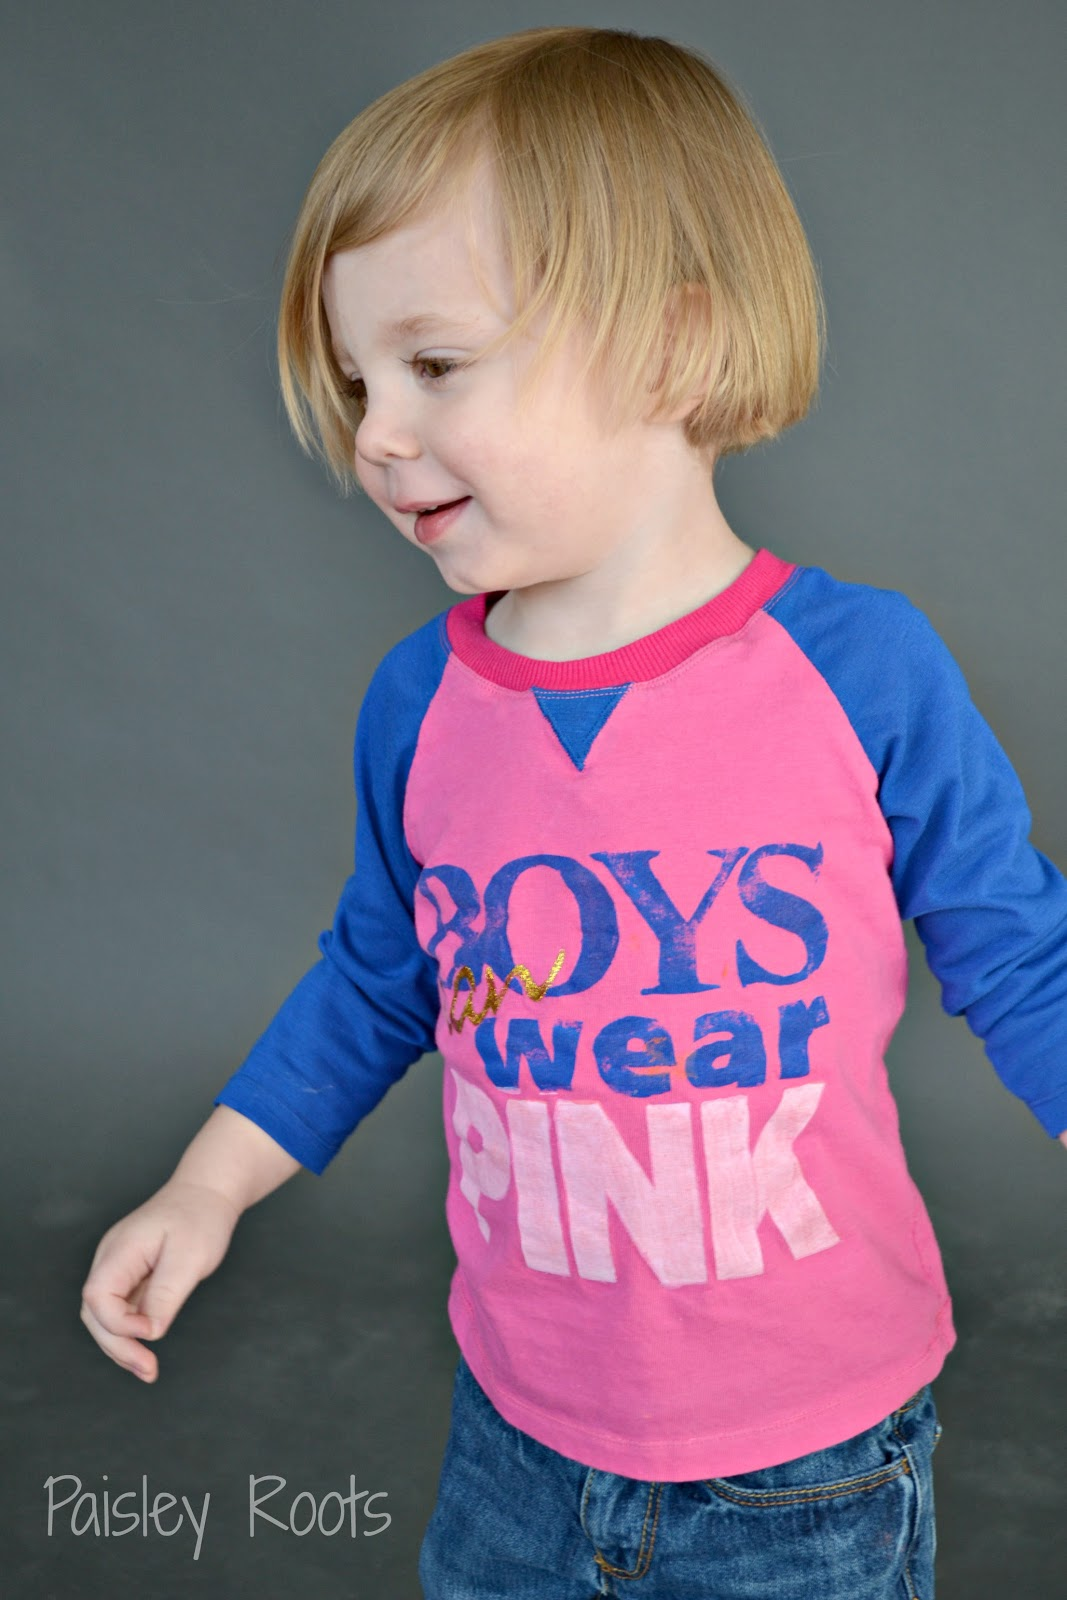 Paisley Roots: Boy's Can Wear Pink